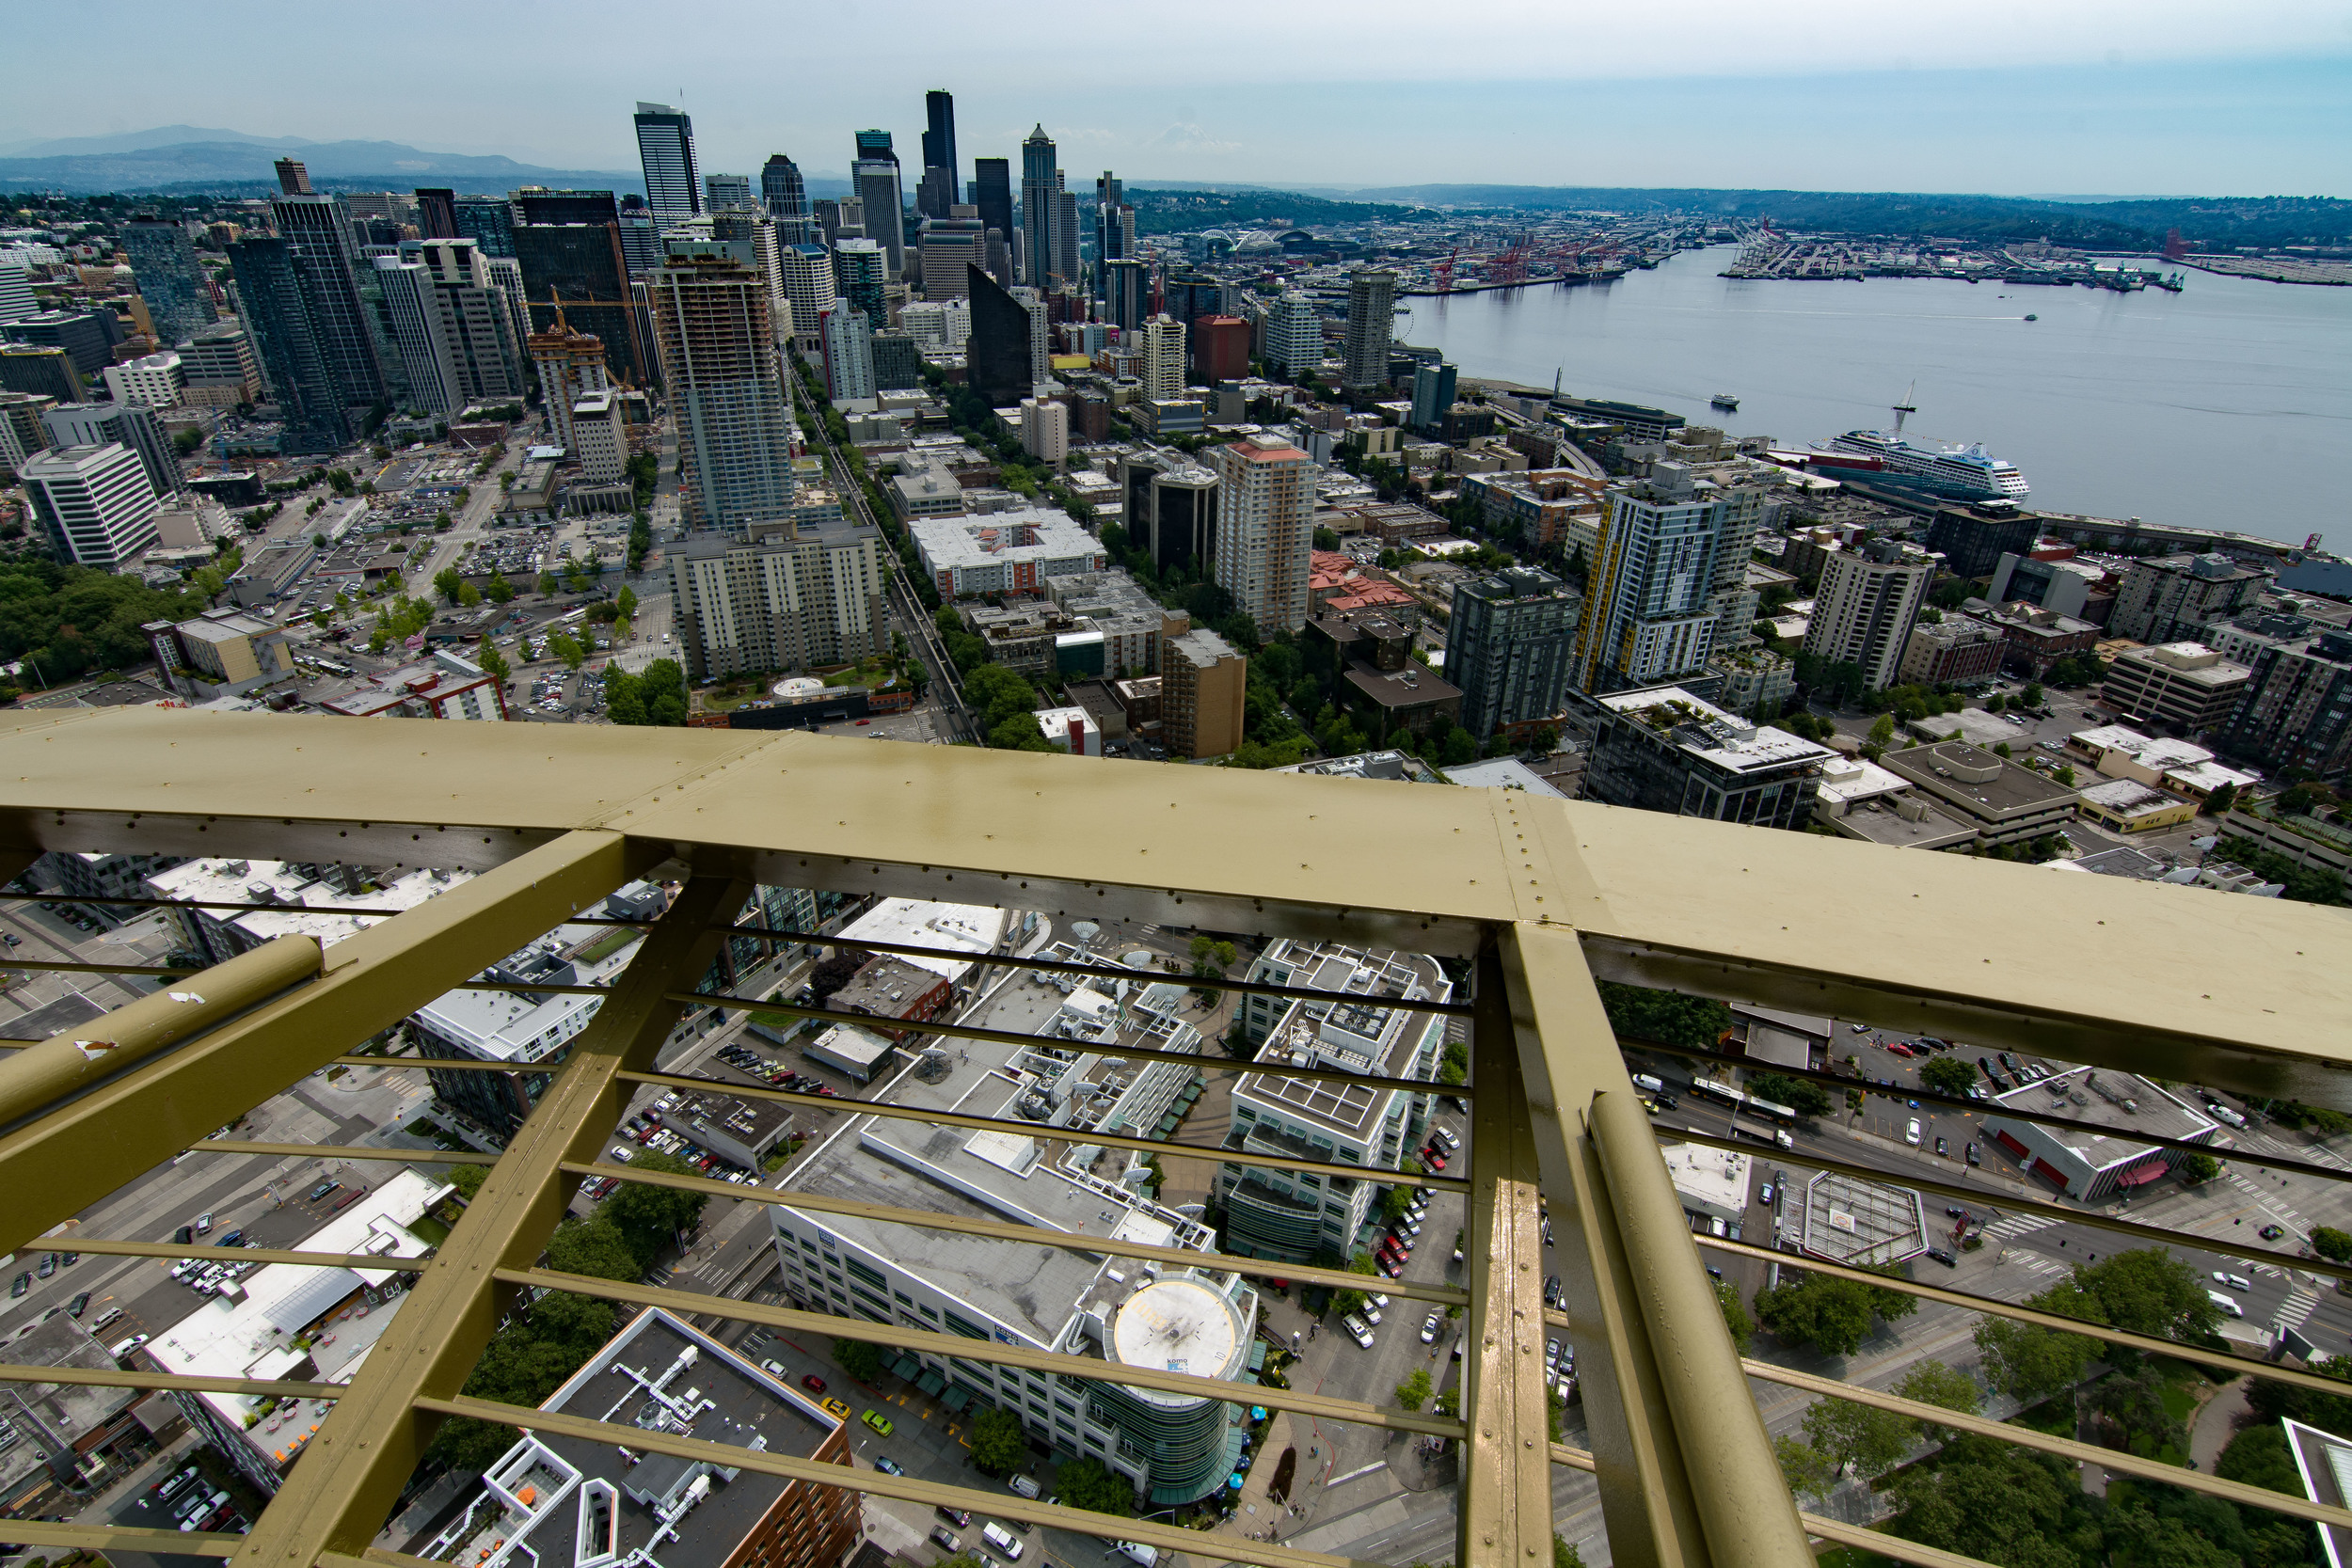 Helluva view from 600+ feet up. Space Needle Observation Deck, Seattle, WA.